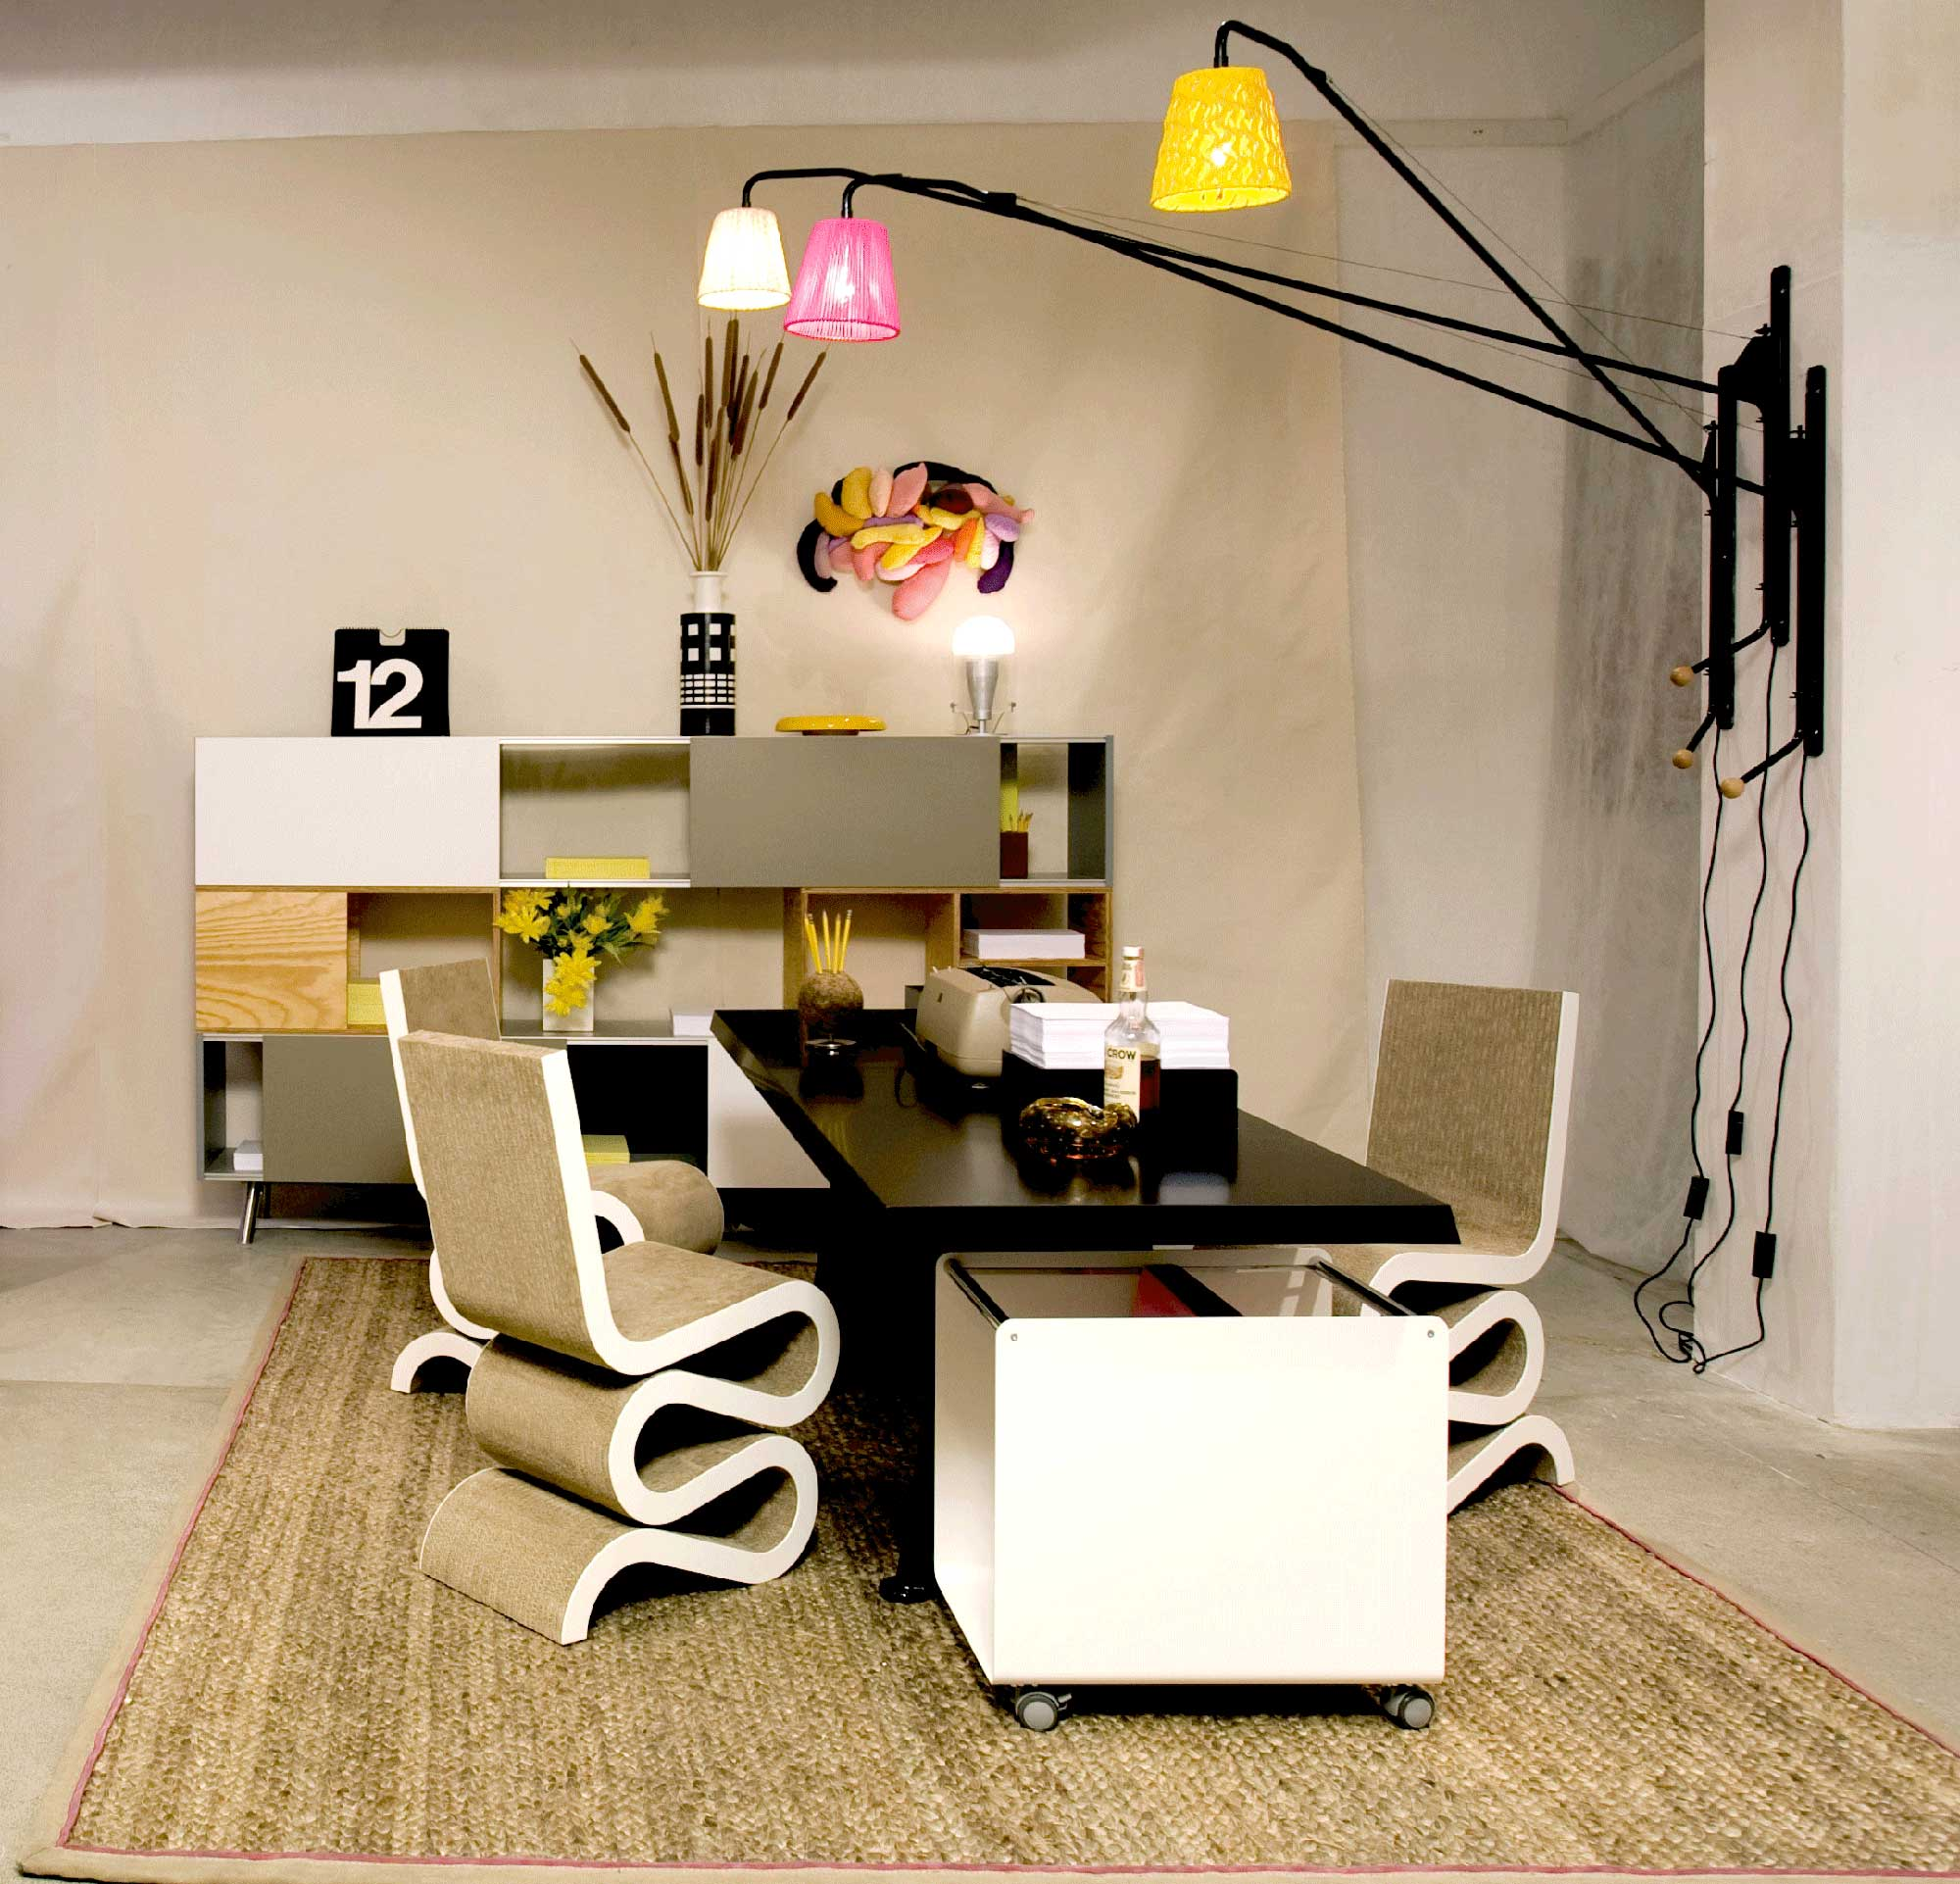 furniture-interior-office-adorable-home-ideas-compact-modern-office-furniture-japanese-house-interior-design-inspiring-for-stunning-decorating-unique-chairs-and-black-gloss-top-work-table-wall-mount